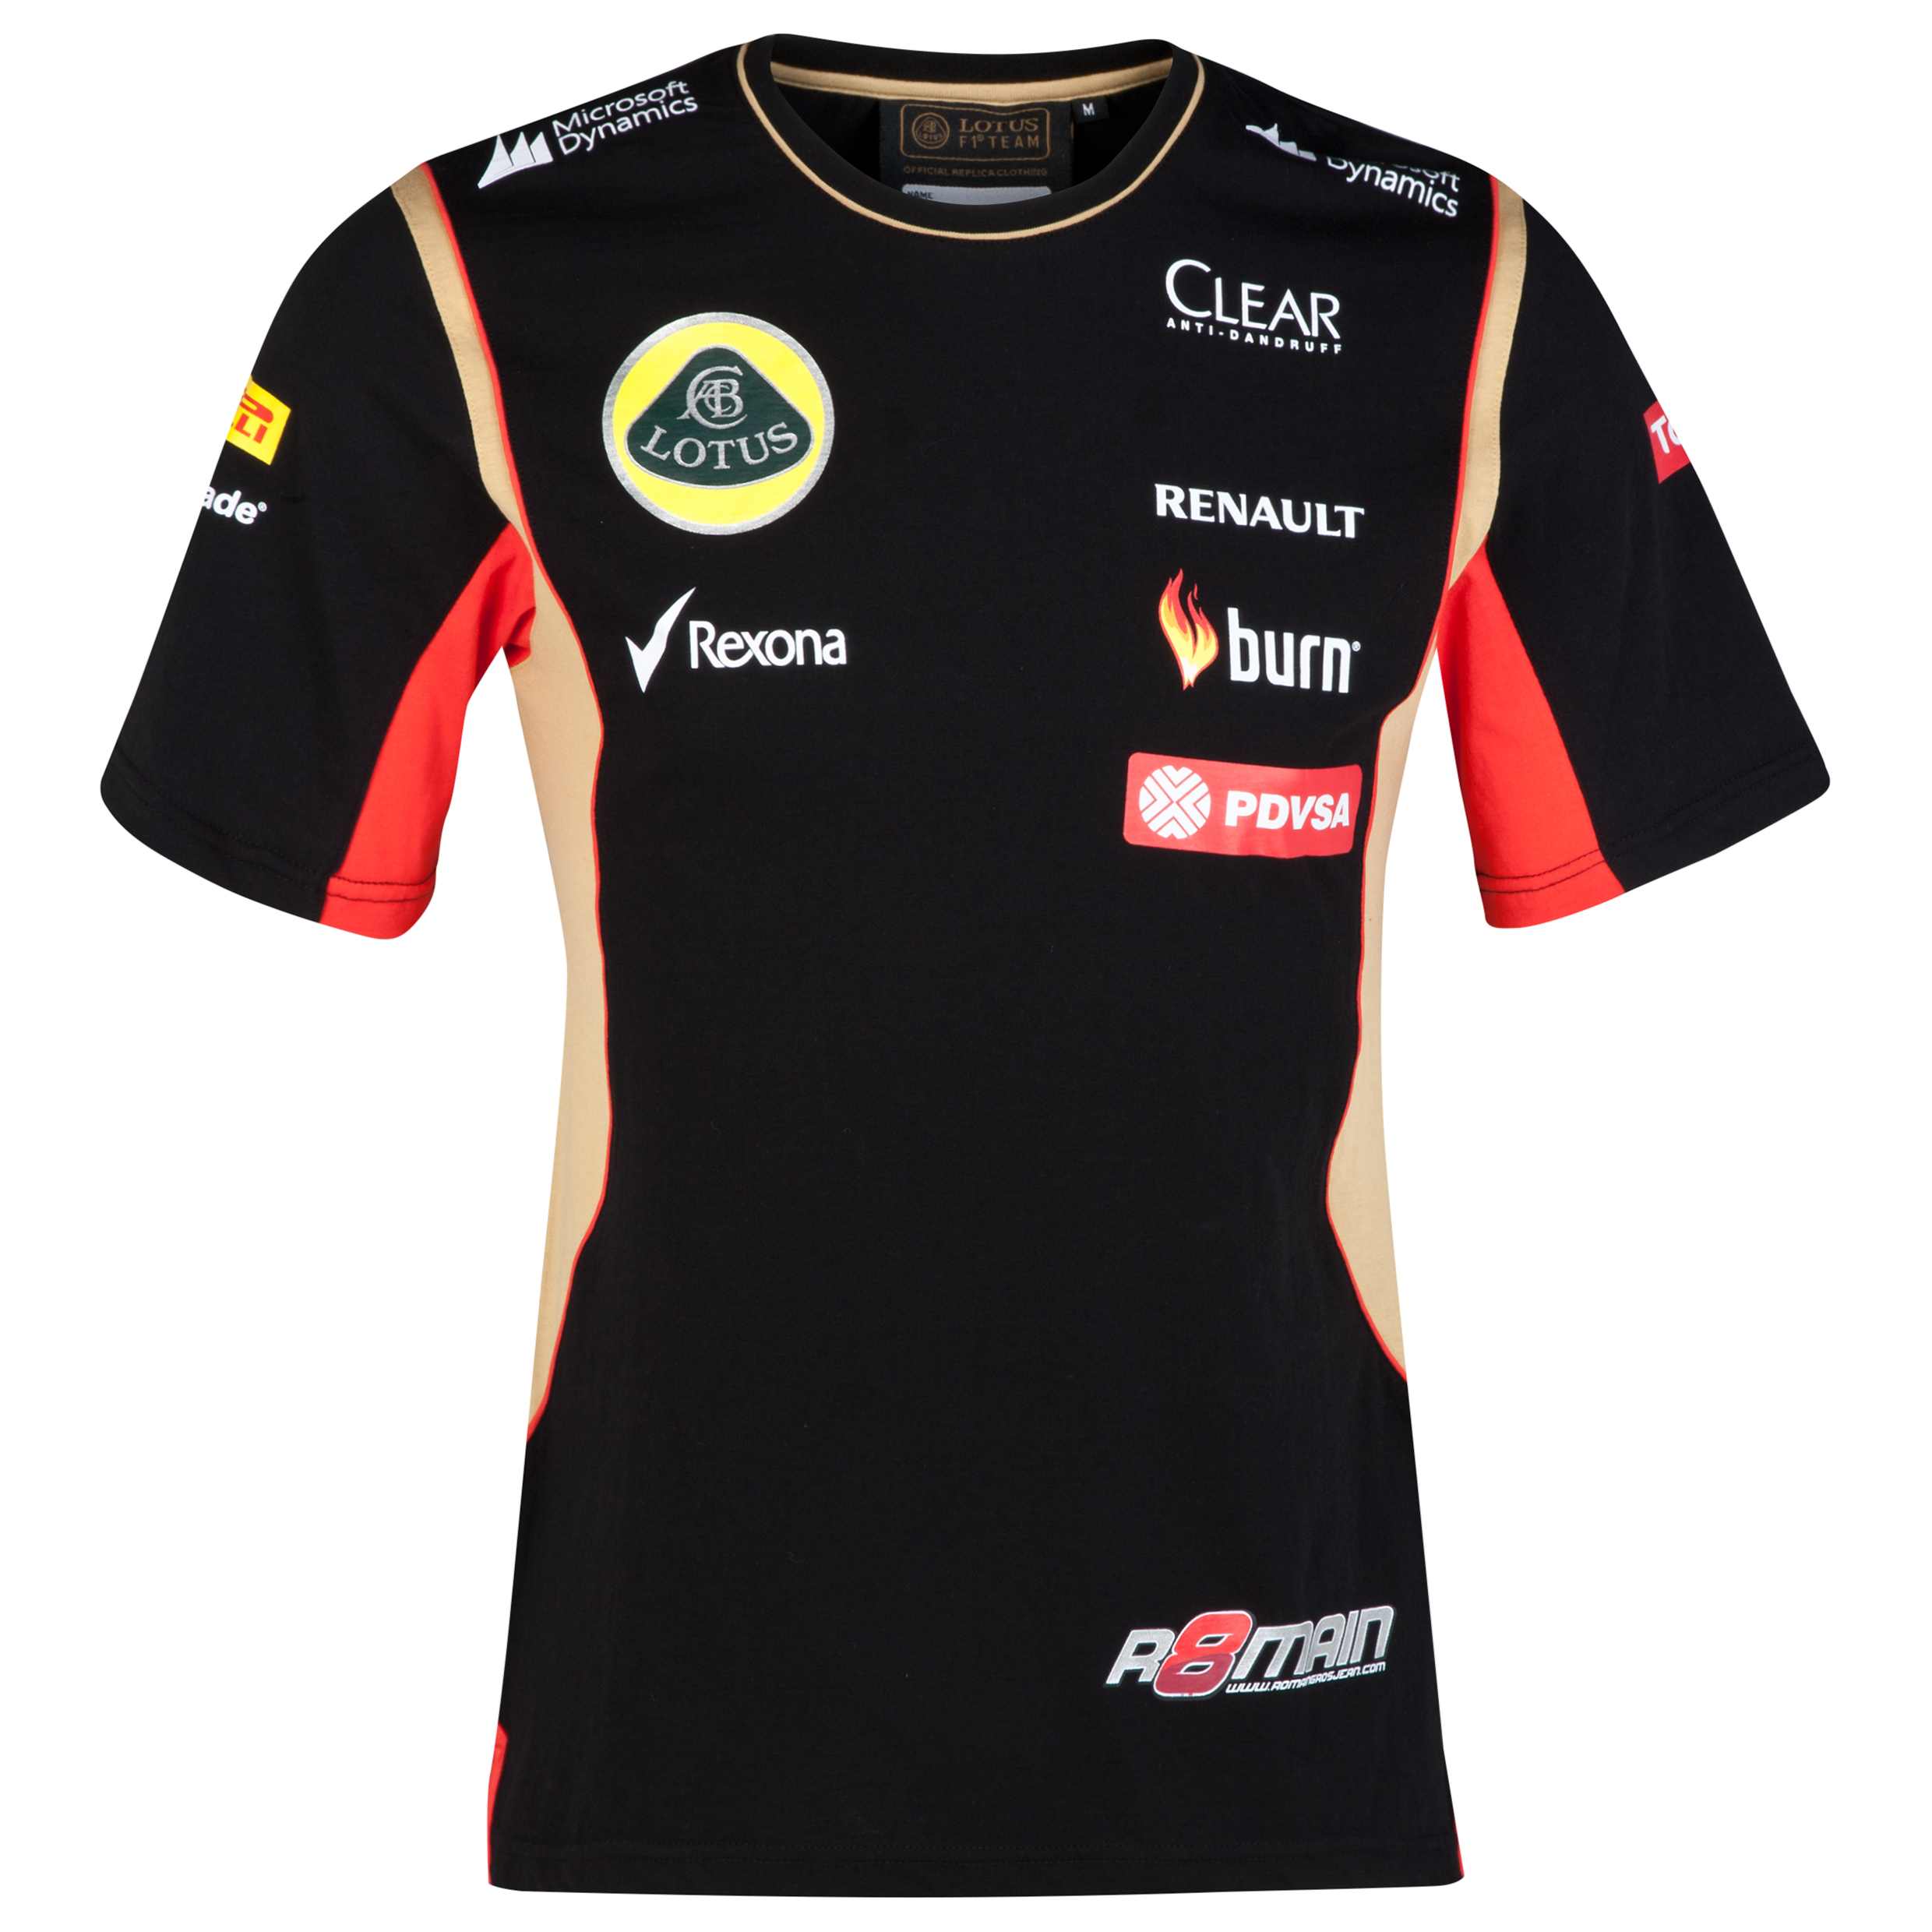 Lotus F1 Driver Replica T-Shirt - Grosjean